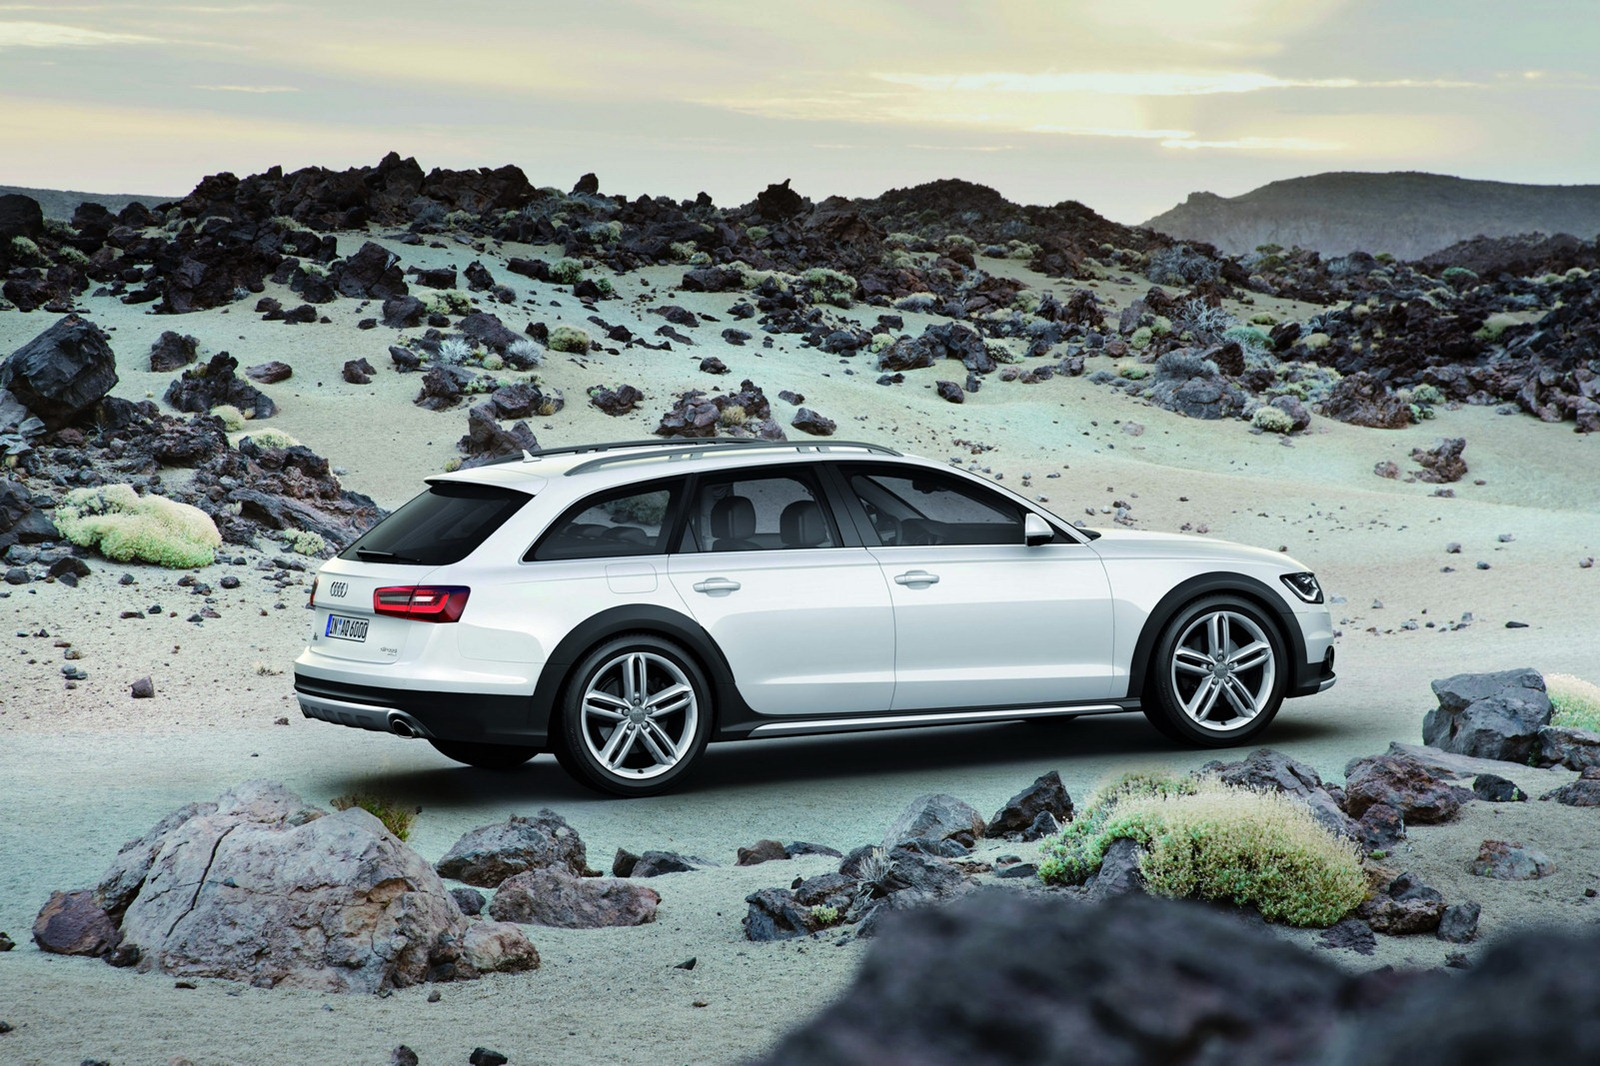 new 2013 audi a6 allroad unveiled autoevolution. Black Bedroom Furniture Sets. Home Design Ideas